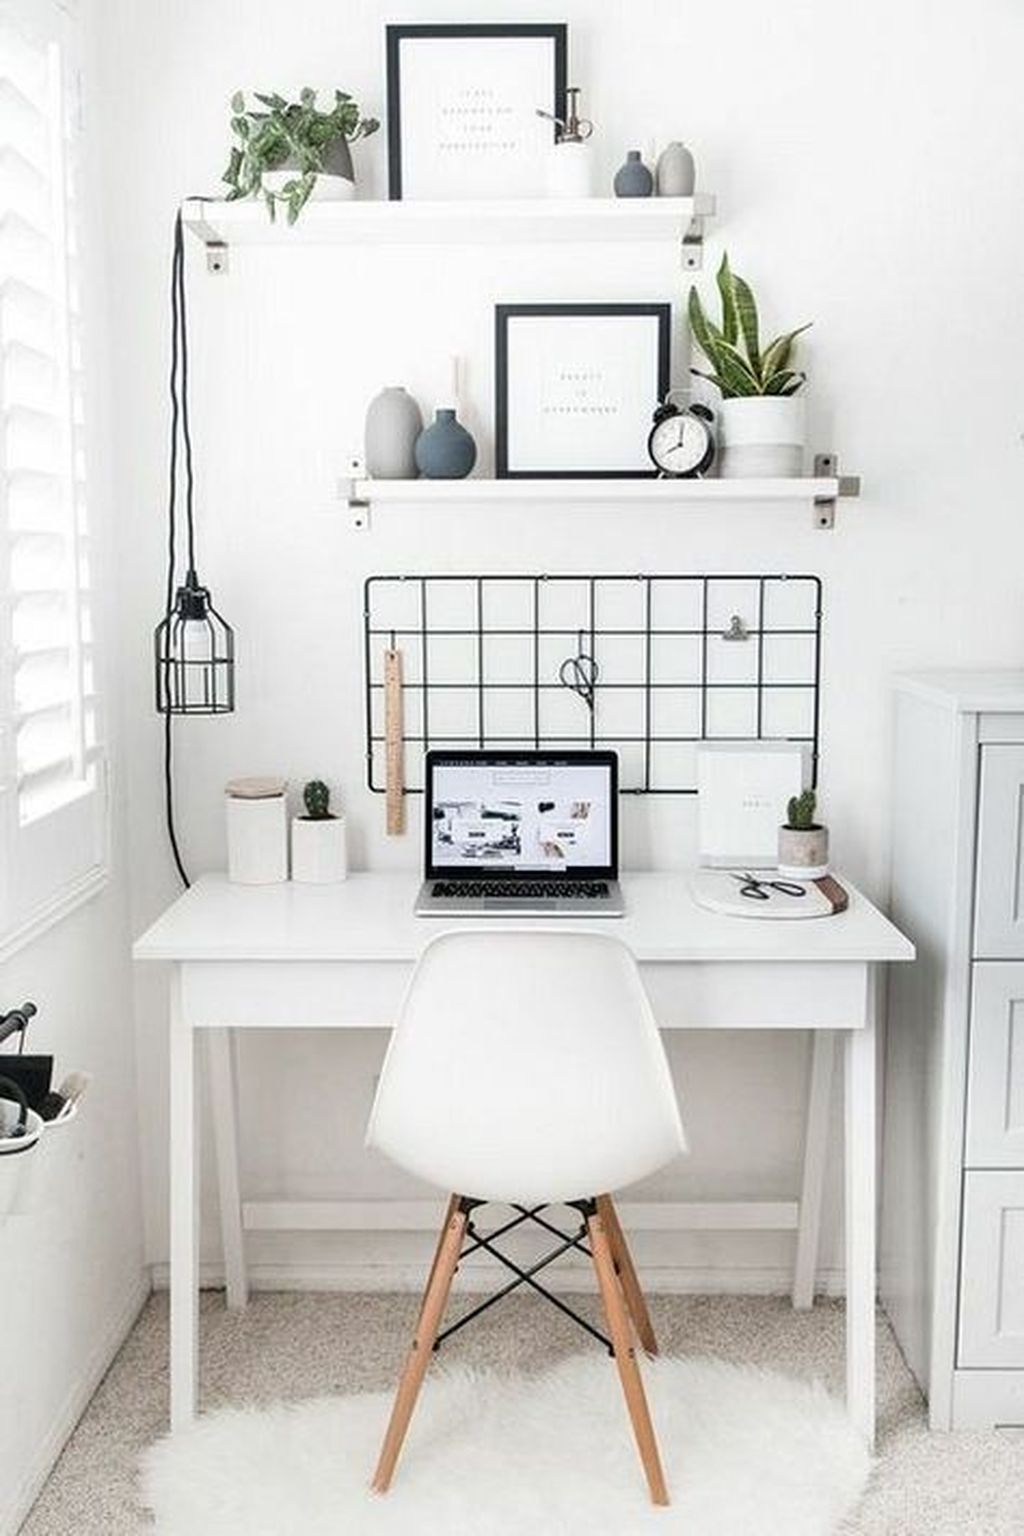 20 Simple And Classy Home Office Design Ideas Trenduhome Modern Home Office Home Office Design Home Office Decor